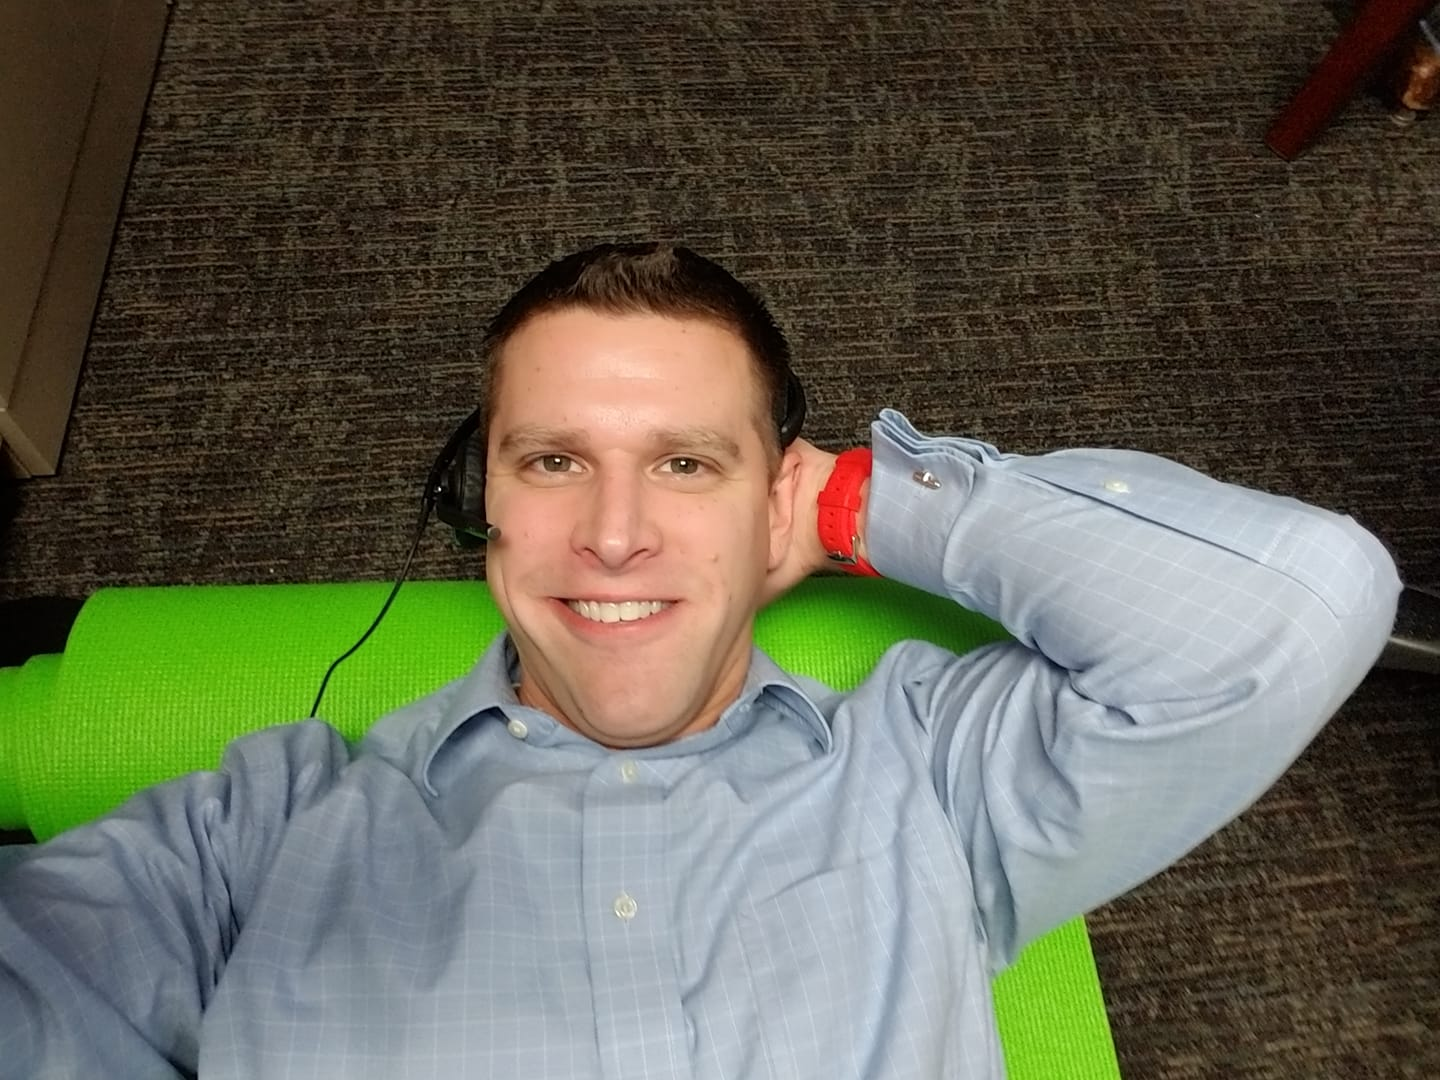 Ron Batcher leans back on a lime green yoga mat and smiles at the camera. He is wearing a headset at work while doing crunches for Abvember.